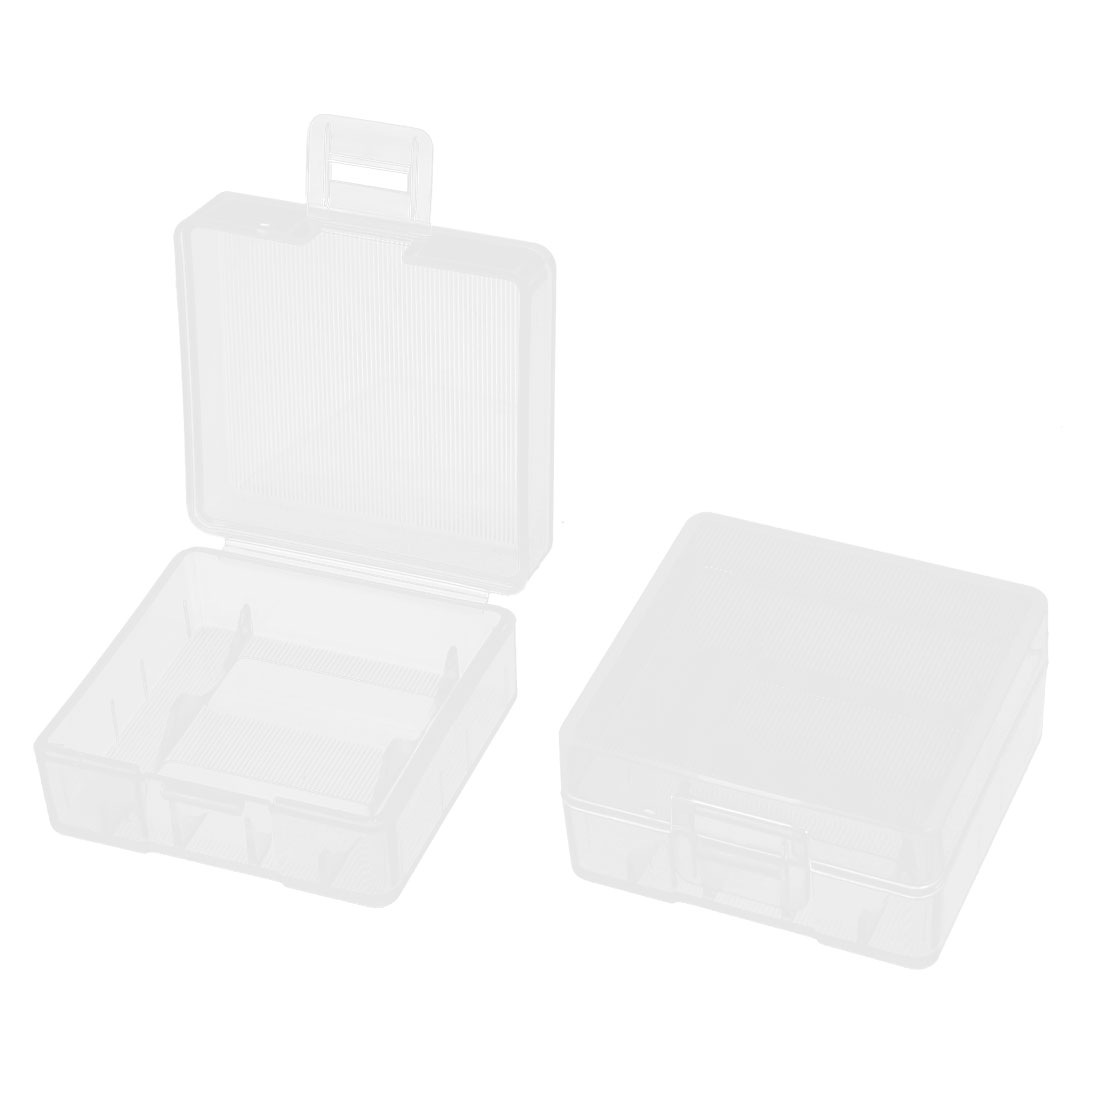 Clear Rectangle Storage Box Case Container 2Pcs for 2 x 18350 Batteries